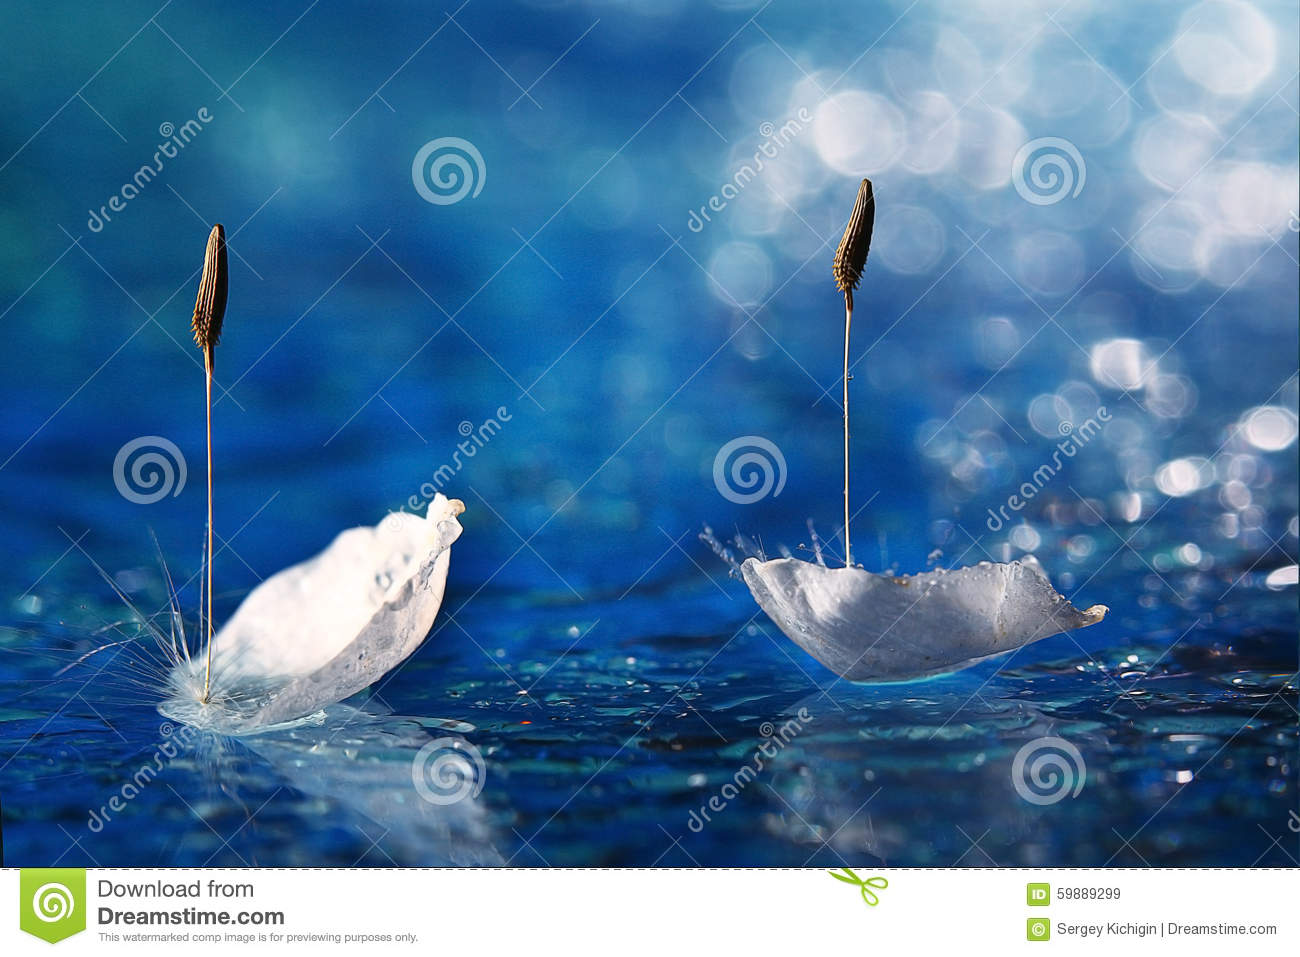 Petals in water like two swan in pond